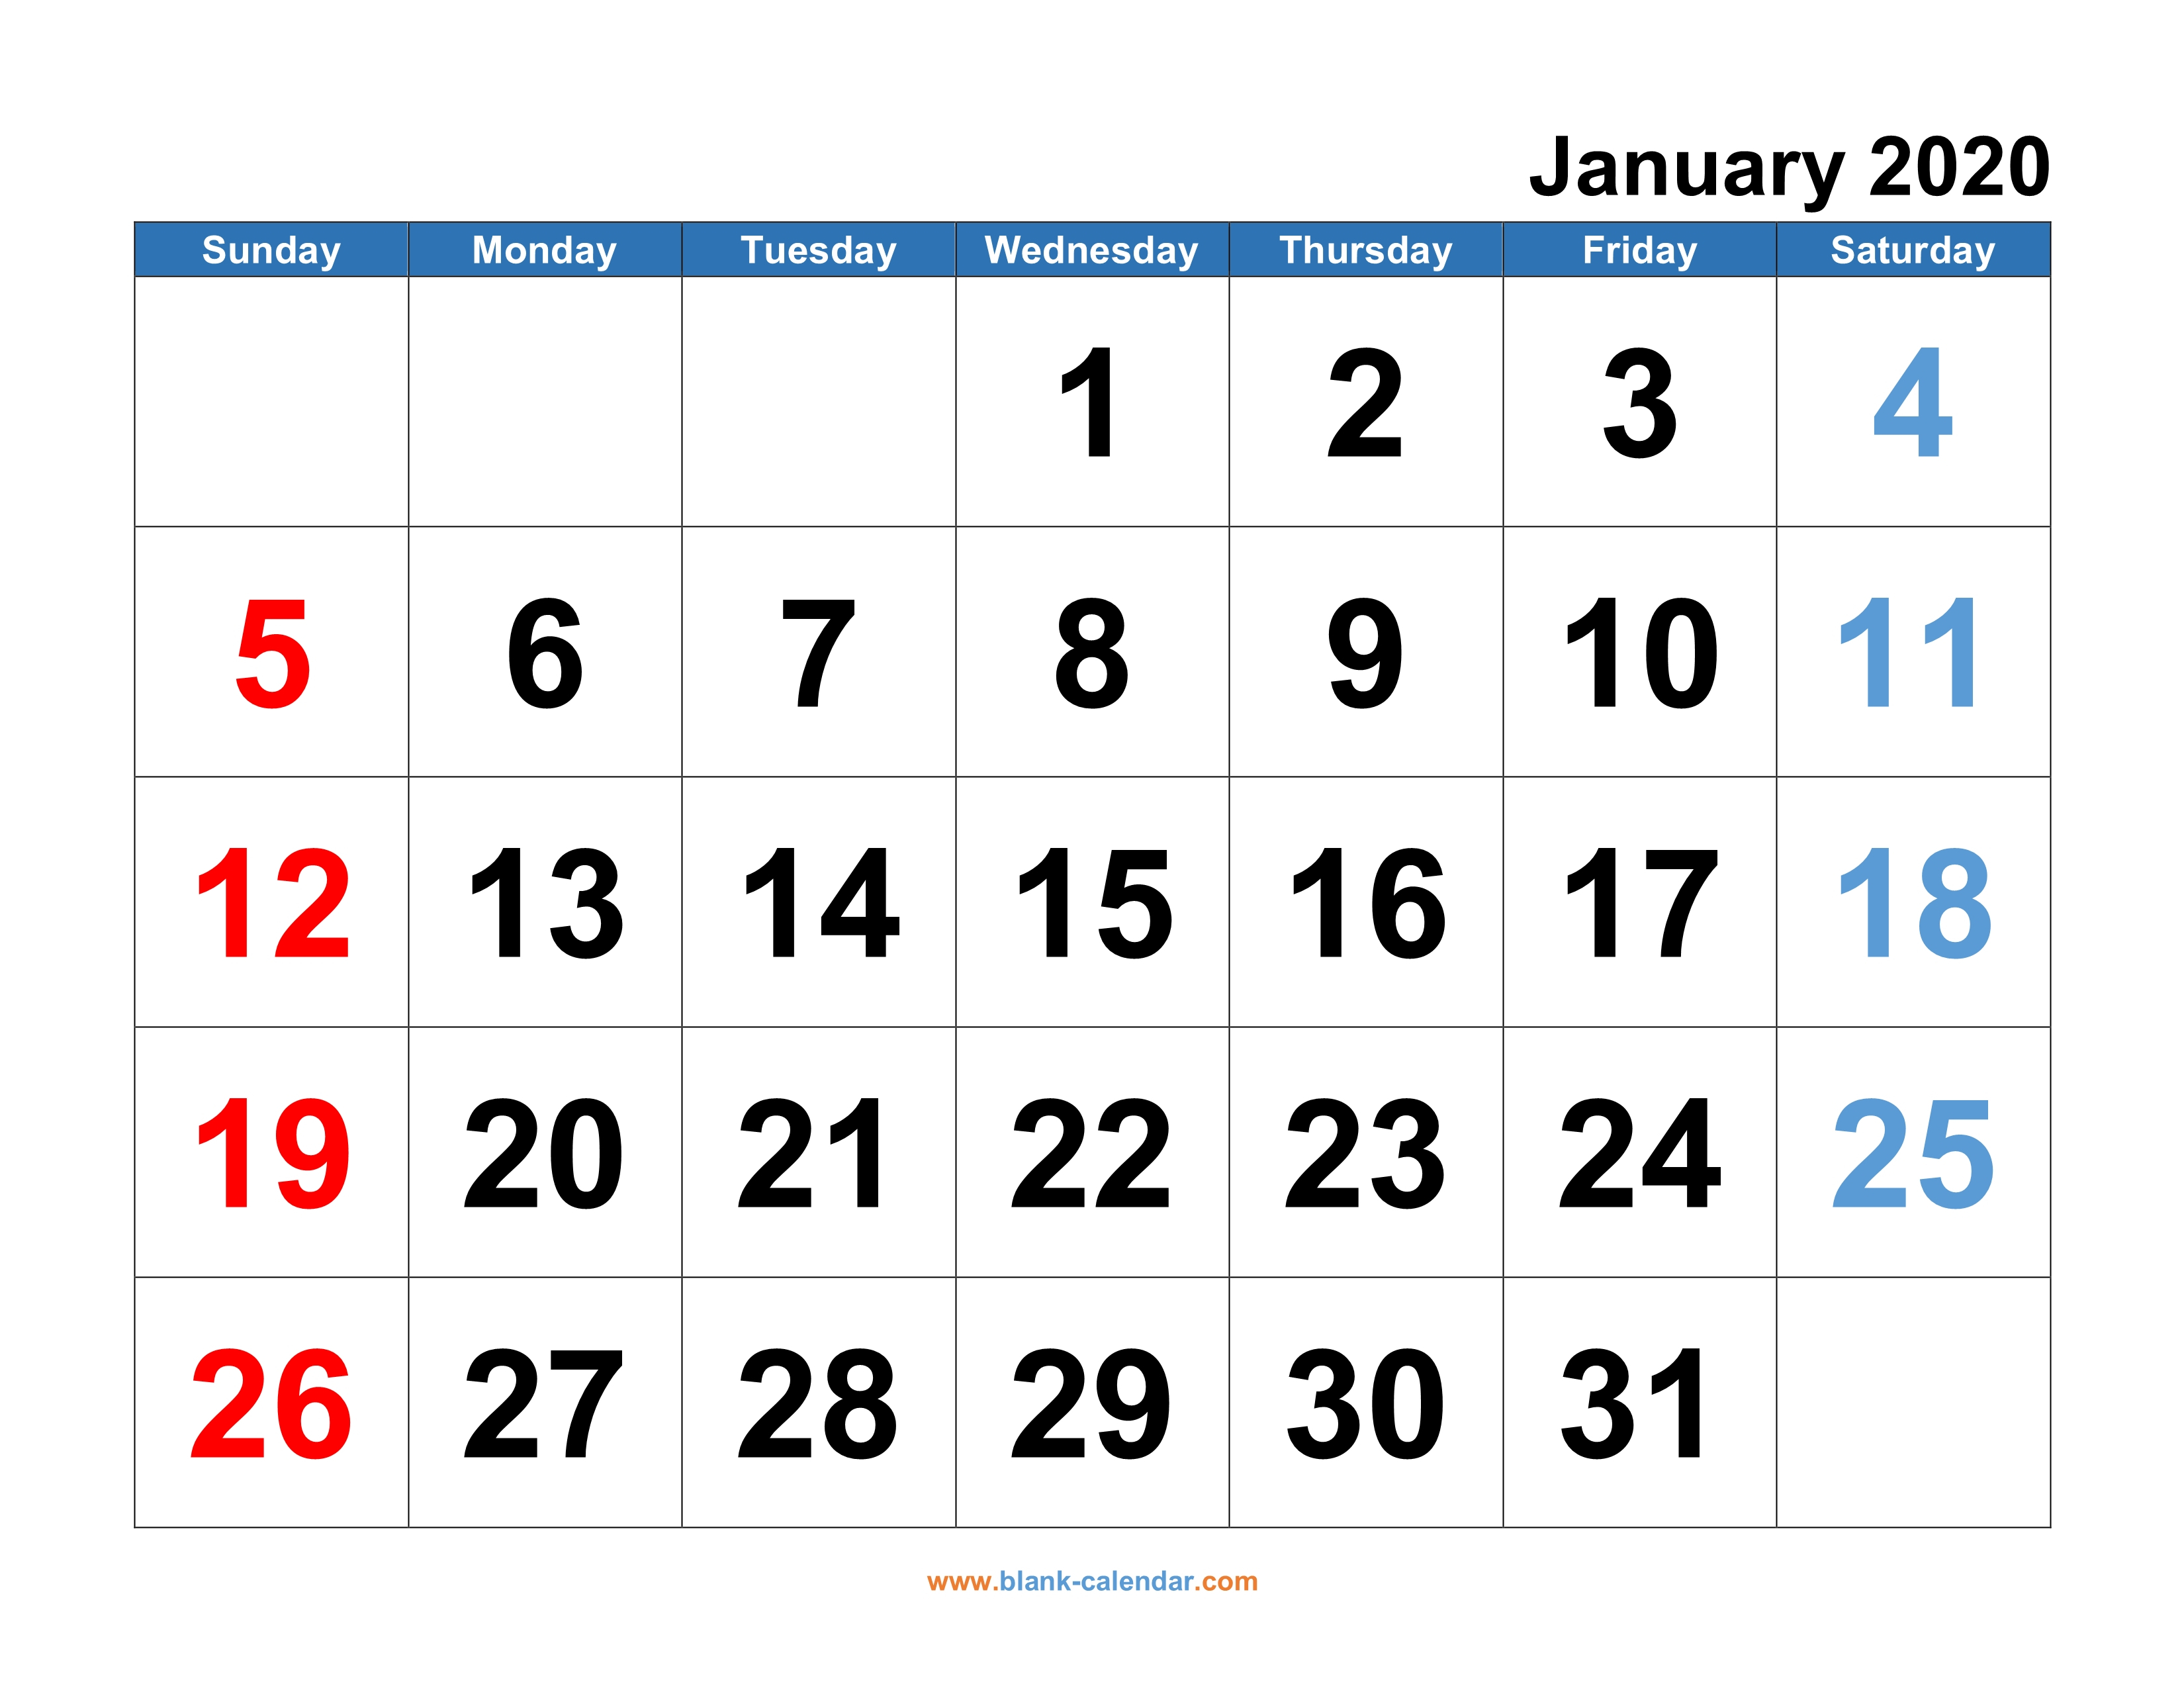 Monthly Calendar 2020   Free Download, Editable And Printable within 2020 Monthly Calendar That Can Be Edited